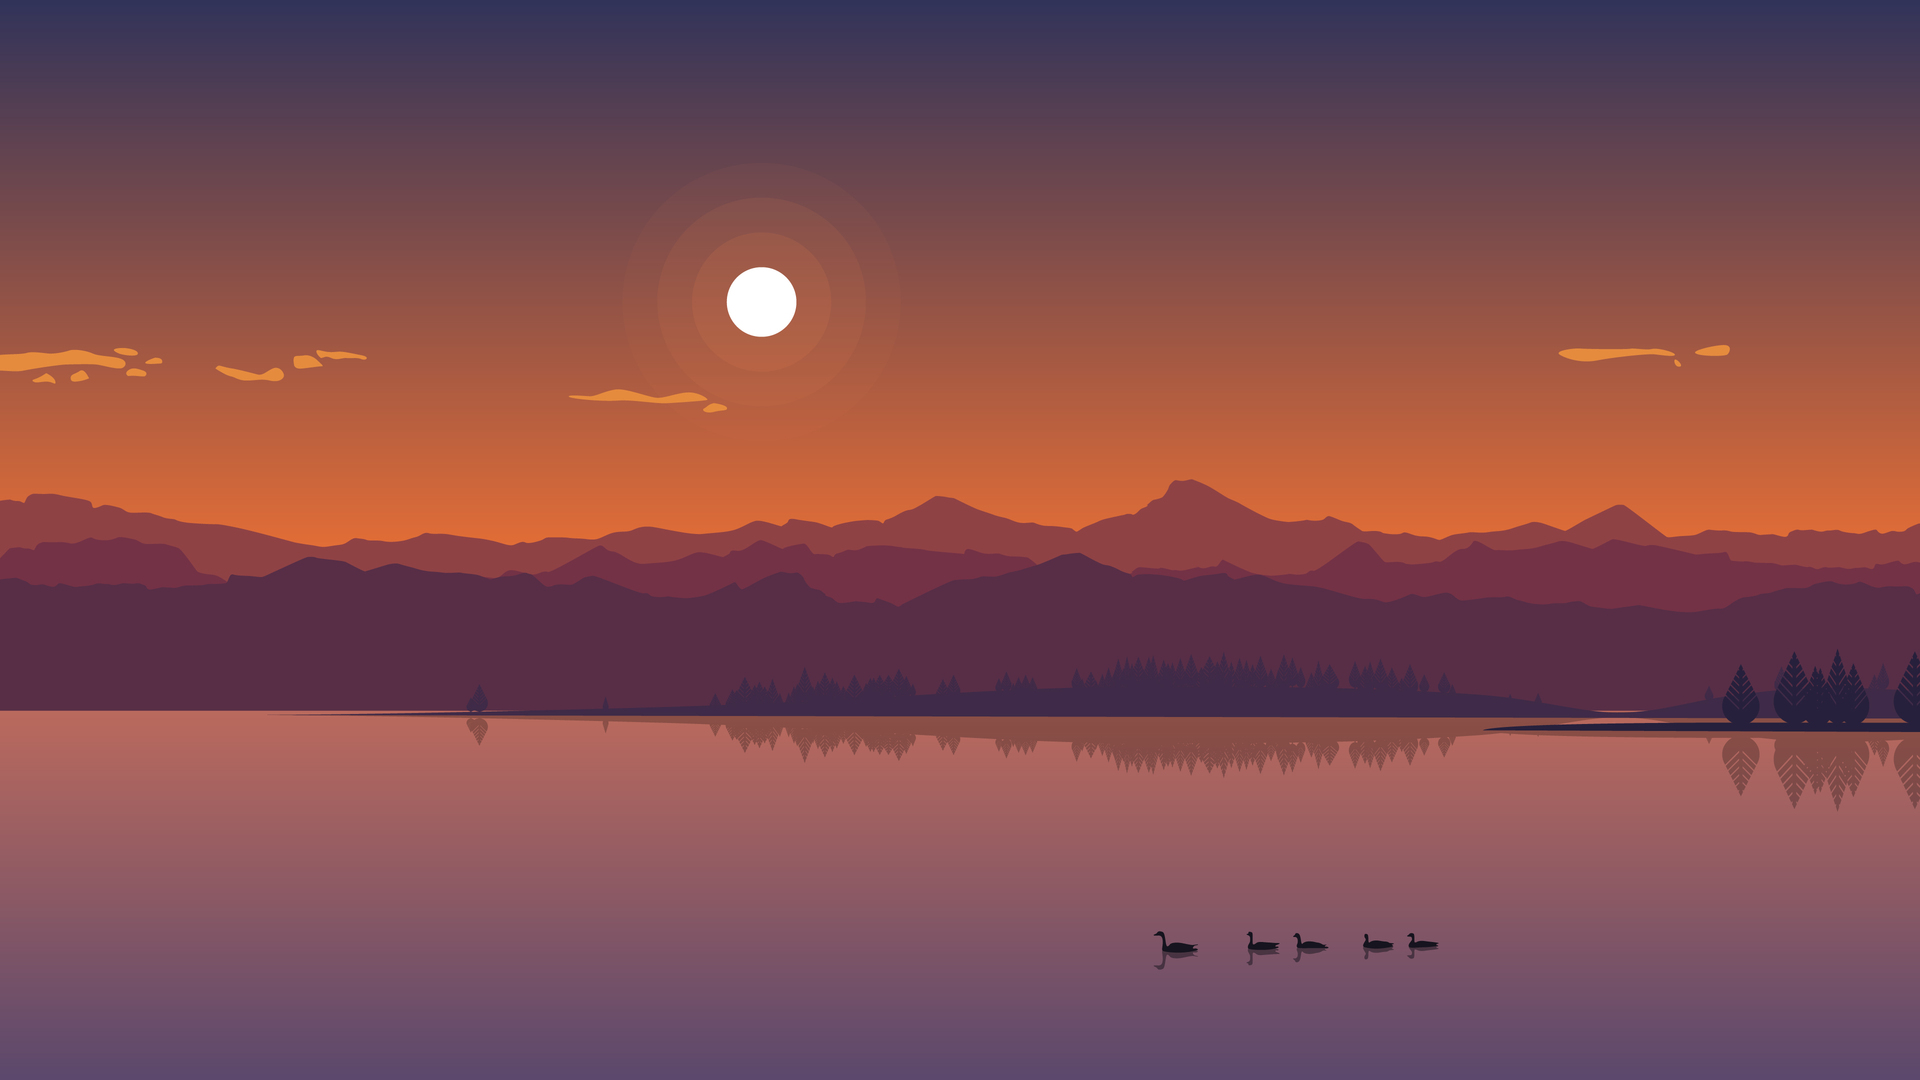 Wallpaper Pubg Minmlist: 1920x1080 Minimal Lake Sunset Laptop Full HD 1080P HD 4k